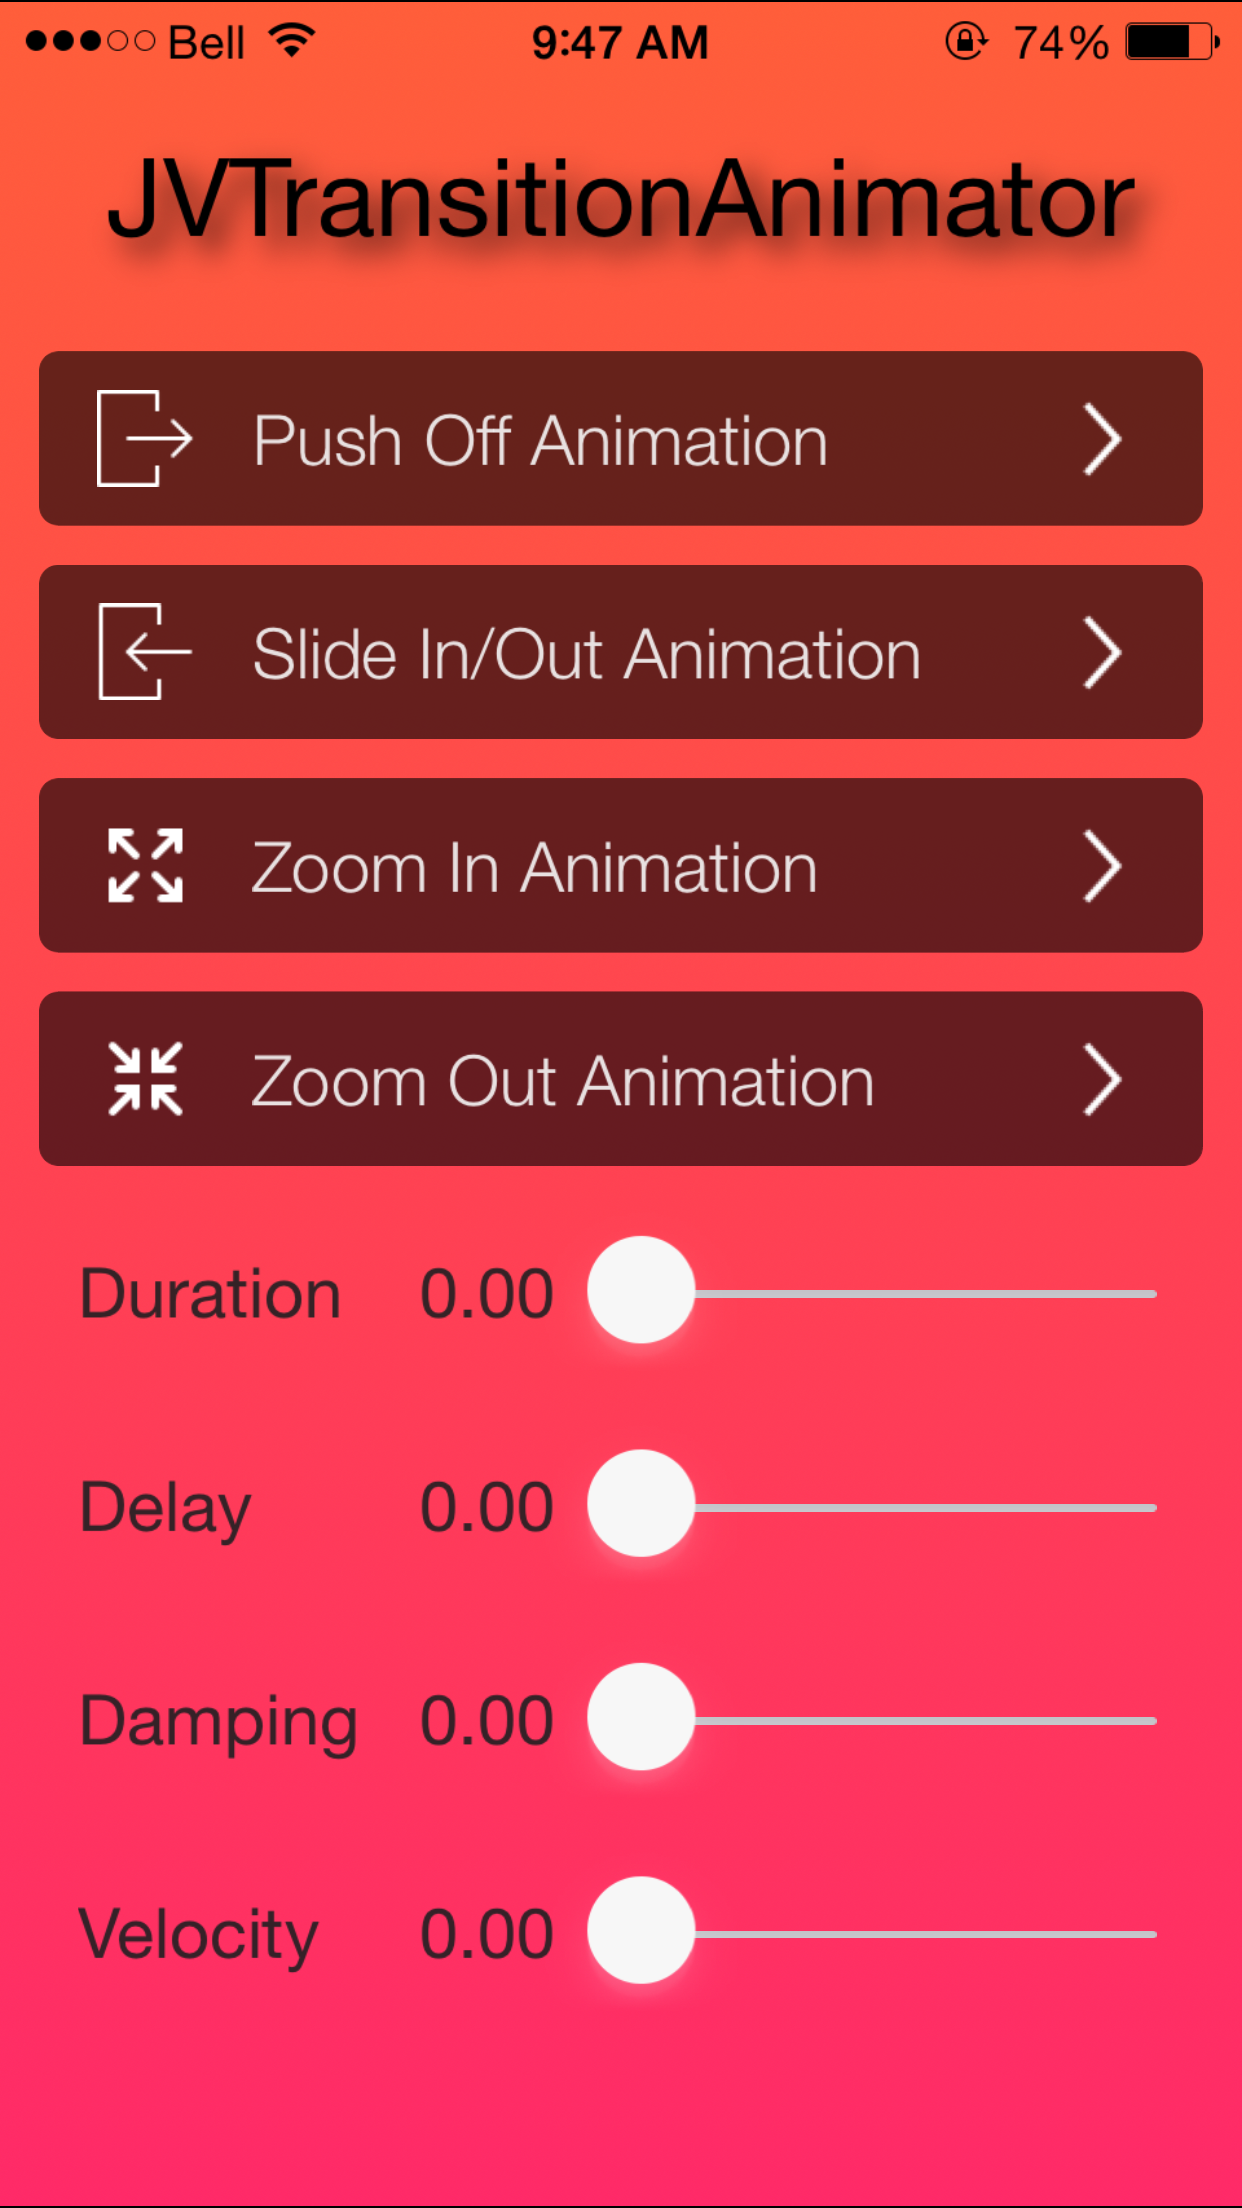 JVTransitionAnimator - Transition Animator screenshot